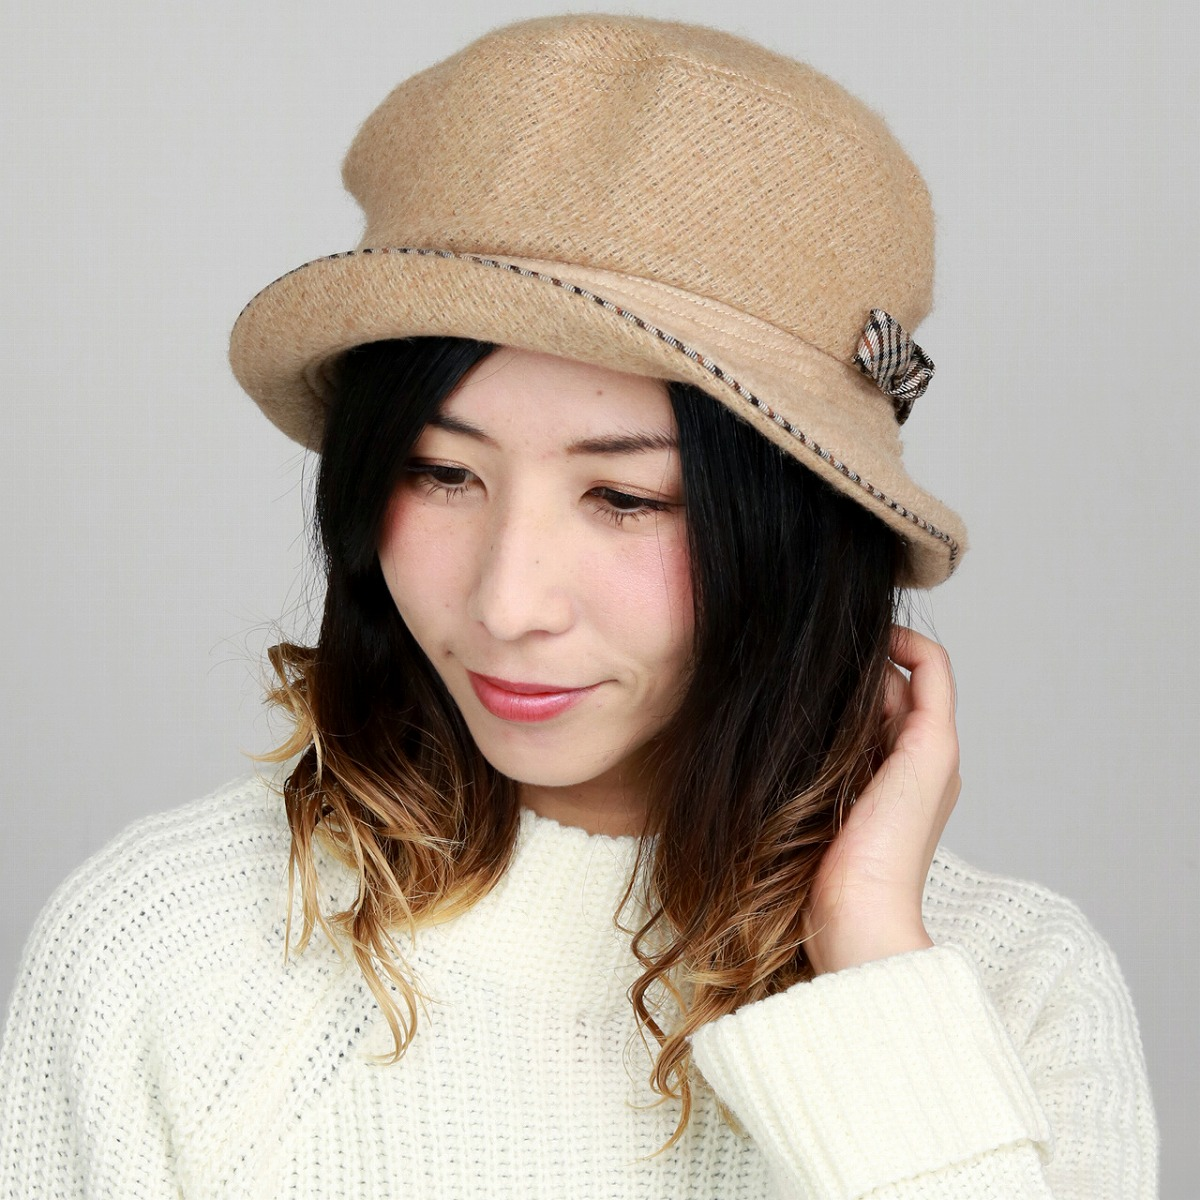 a7196648 Product made in DAKS hat wool fabric Lady's hat fashion Mrs. sailor hat  check Hattori ...